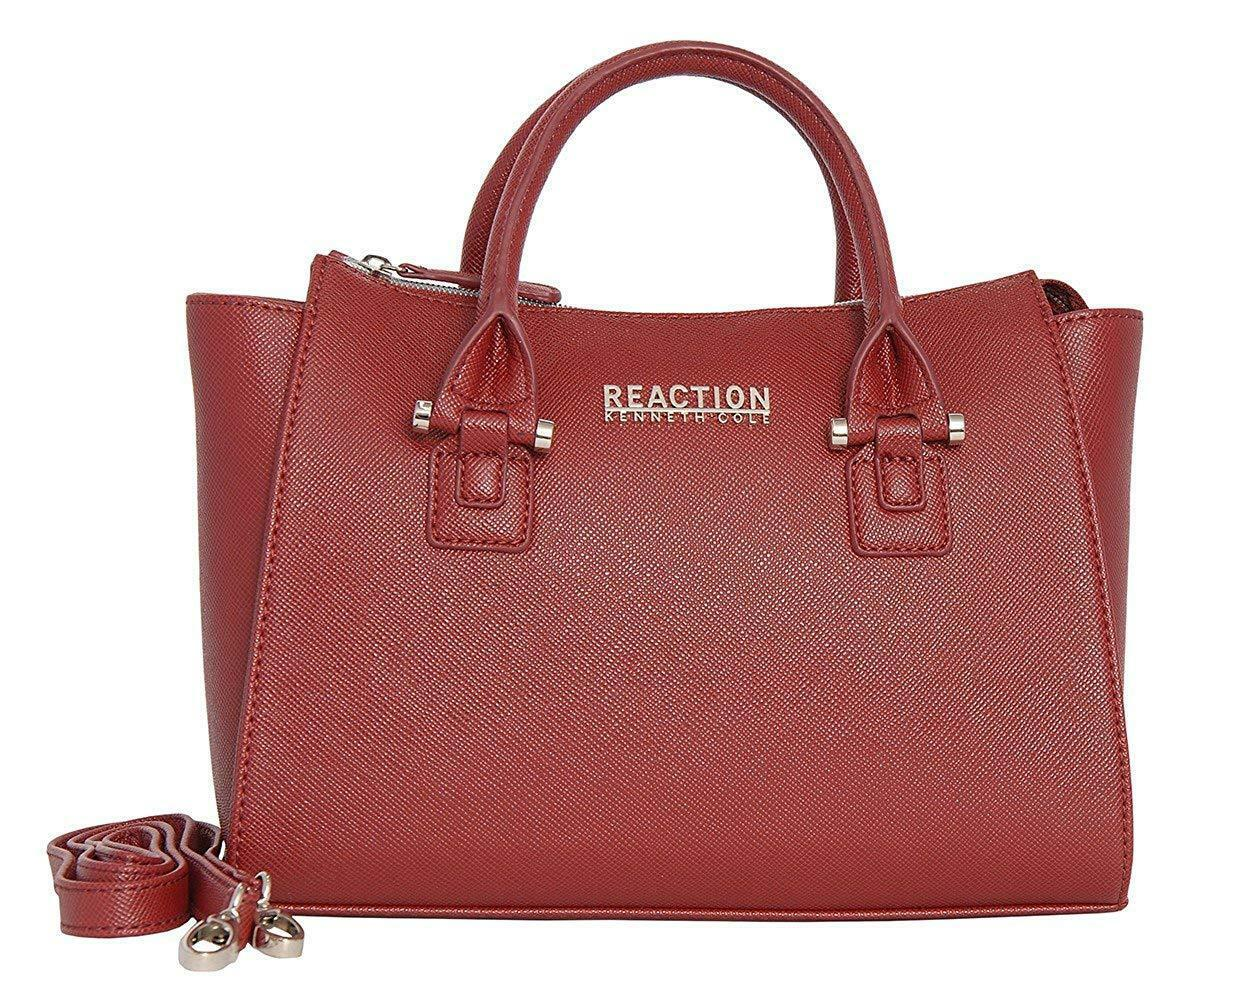 6a5e9e7f0 Kenneth Cole Reaction Bags for Women Philippines - Kenneth Cole ...